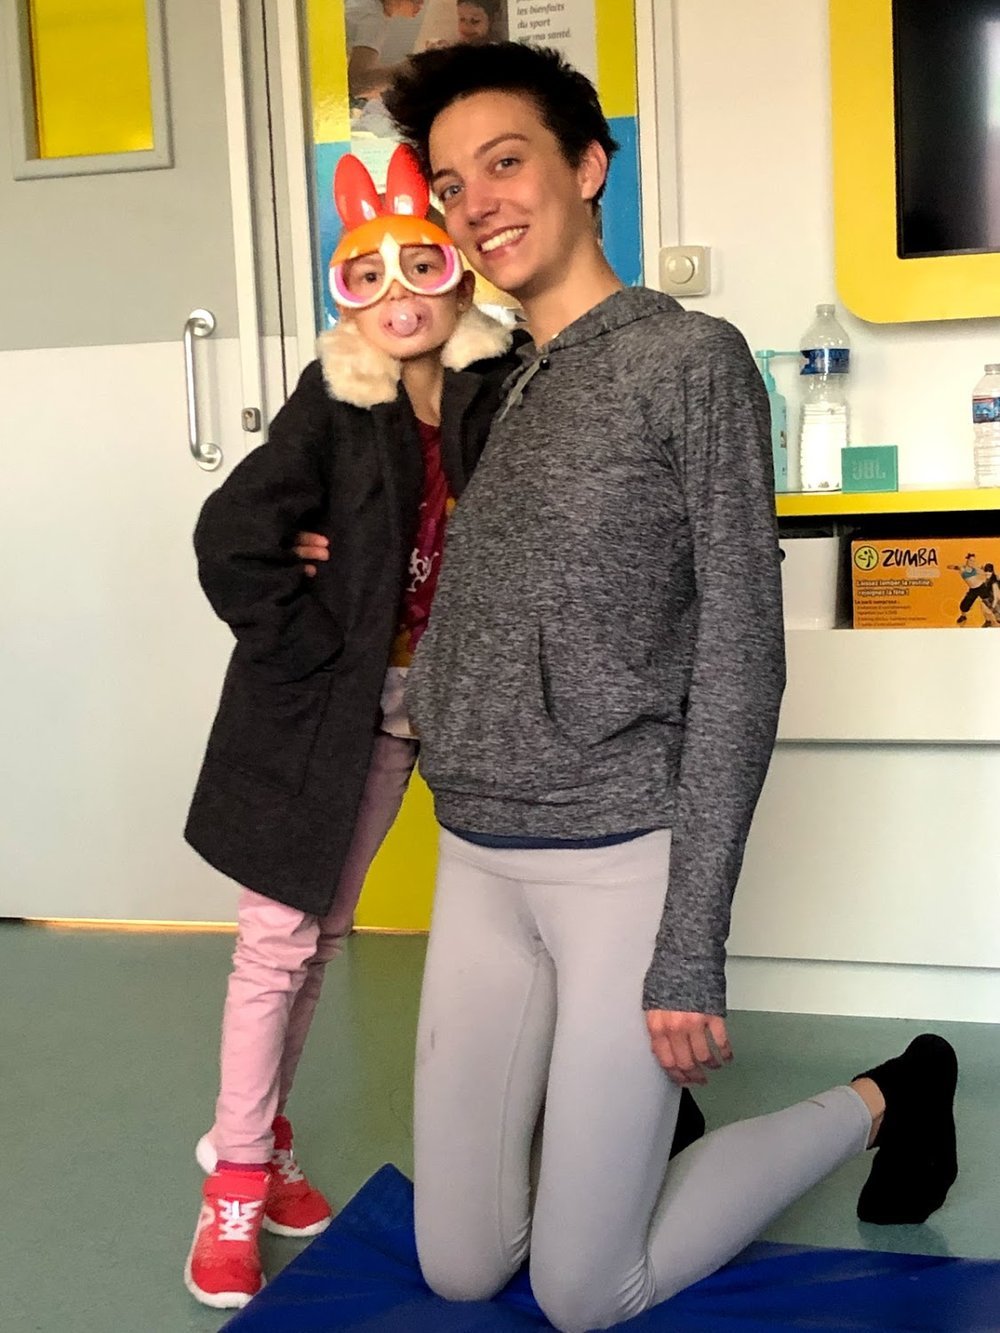 Lola and Charlotte at La Timone Children's Hospital in Marseille. Every Wednesday, we visited Lola and the other children to share meditation, visualization, and breathing practices. The enthusiasm of this little girl was edifying.